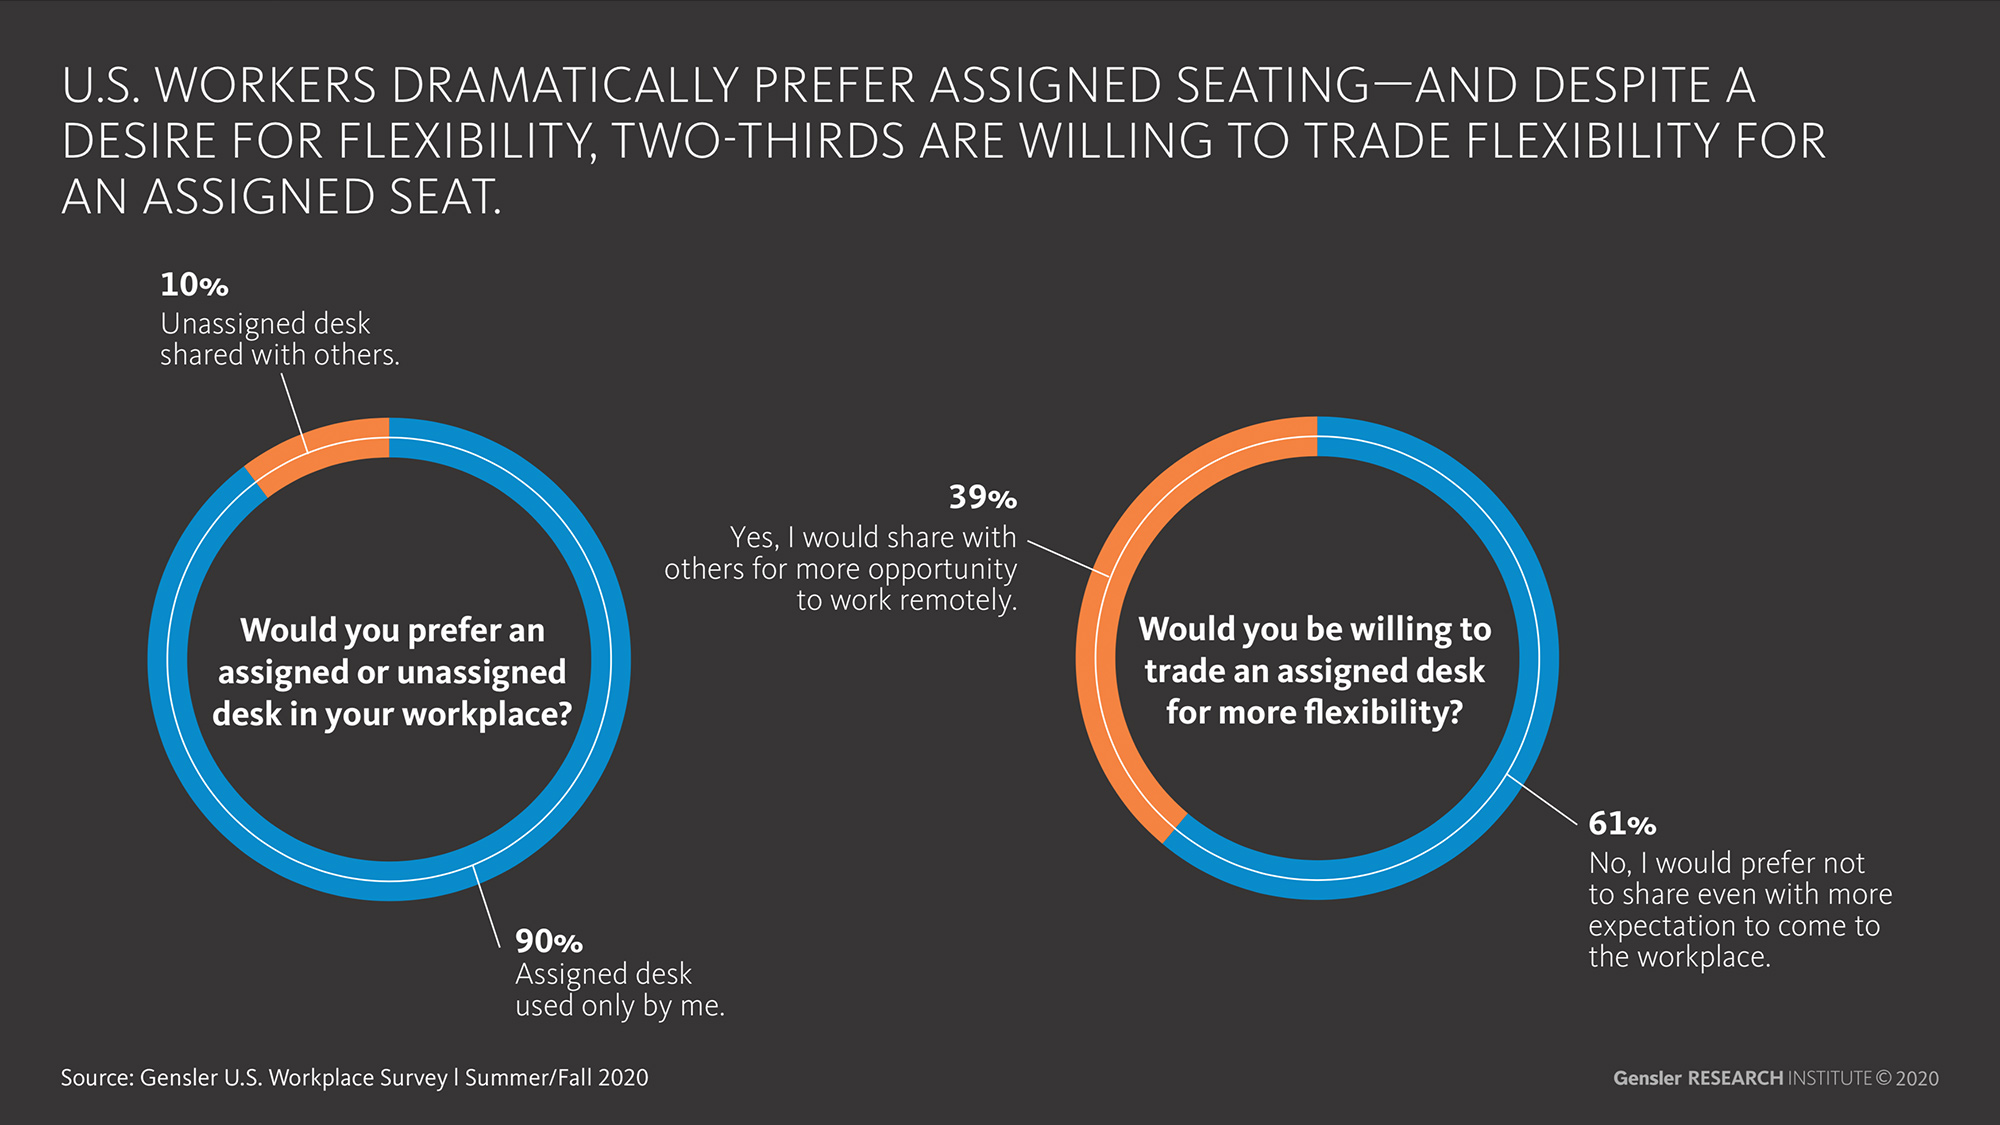 Gensler U.S. Workplace Survey workers prefer assigned seating